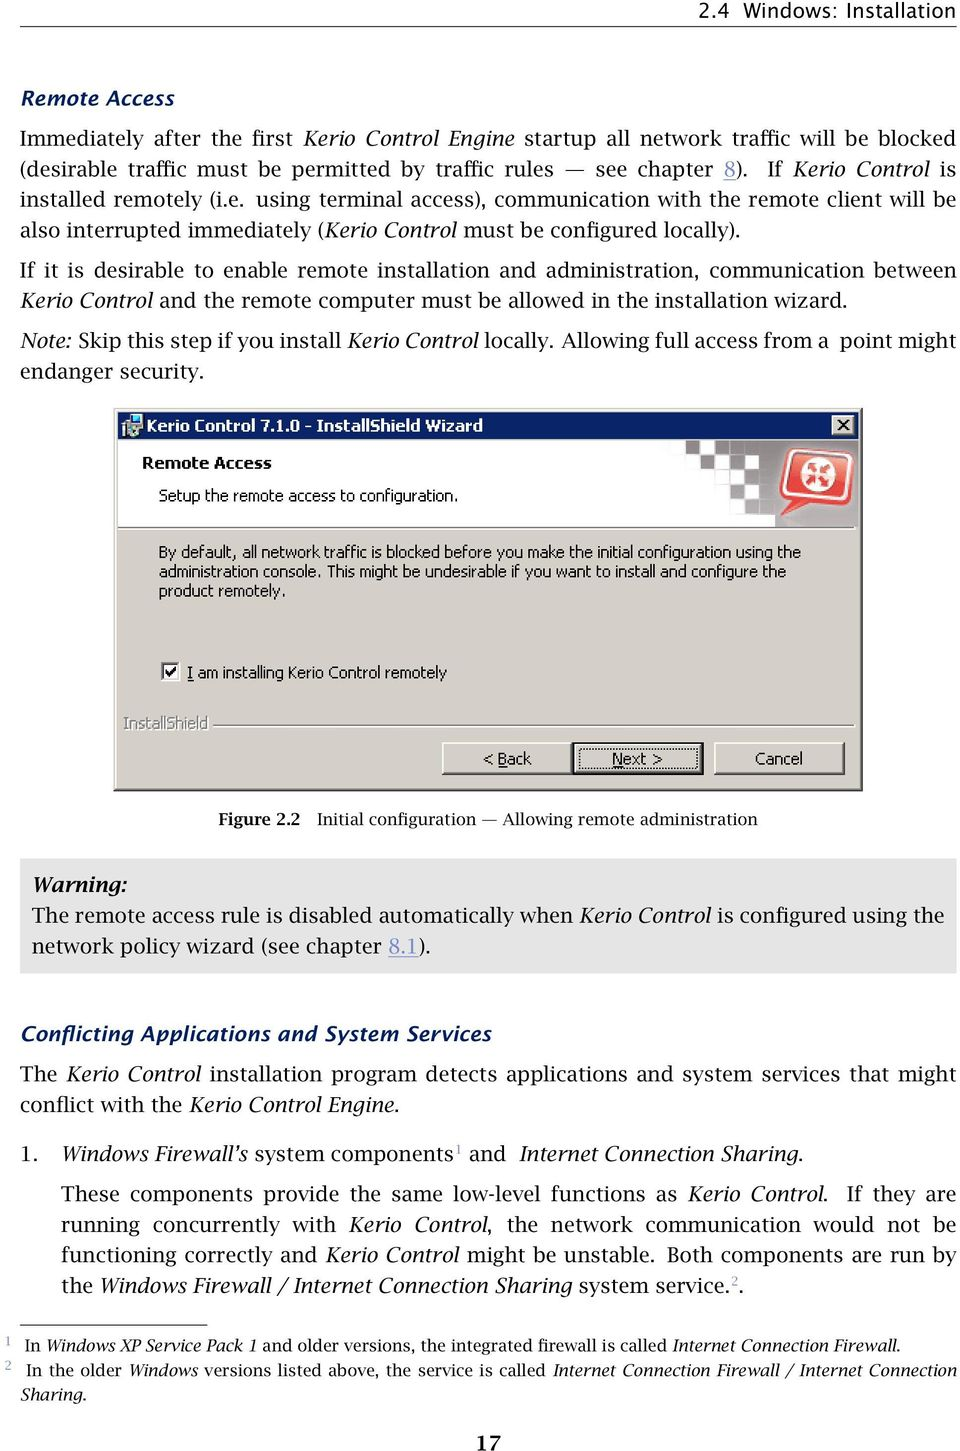 If it is desirable to enable remote installation and administration, communication between Kerio Control and the remote computer must be allowed in the installation wizard.